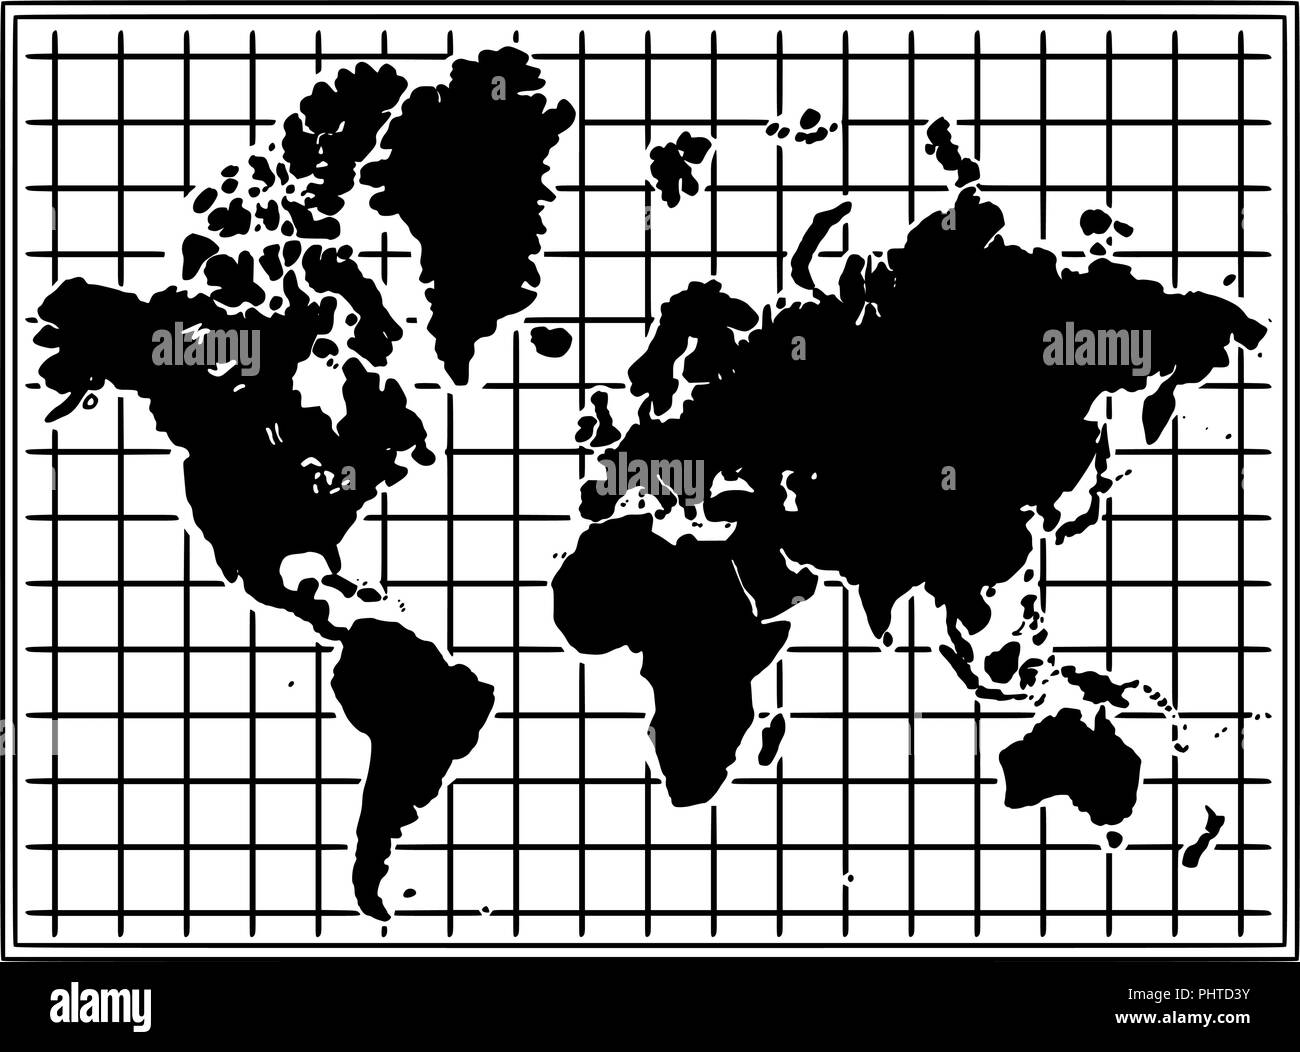 Cartoon Drawing Illustration of World Map in Black and White - Stock Image